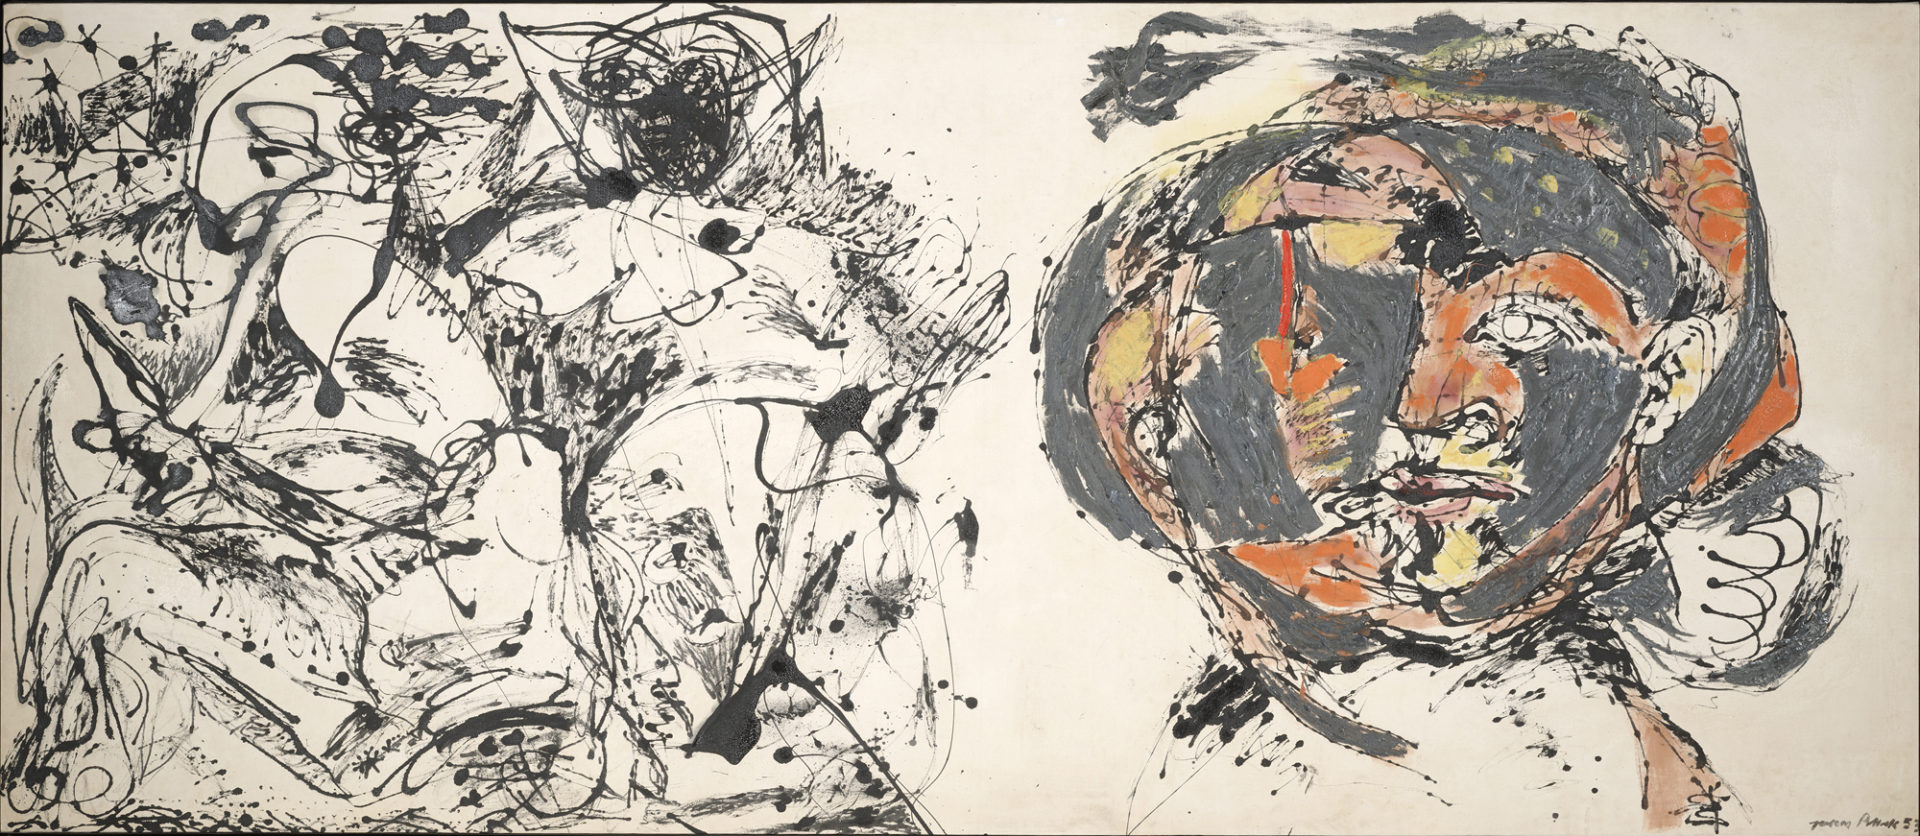 jackson pollock essay jackson pollock blind spots the london  jackson pollock blind spots the london magazine jackson pollock portrait and a dream 1953 acirccopy pollock